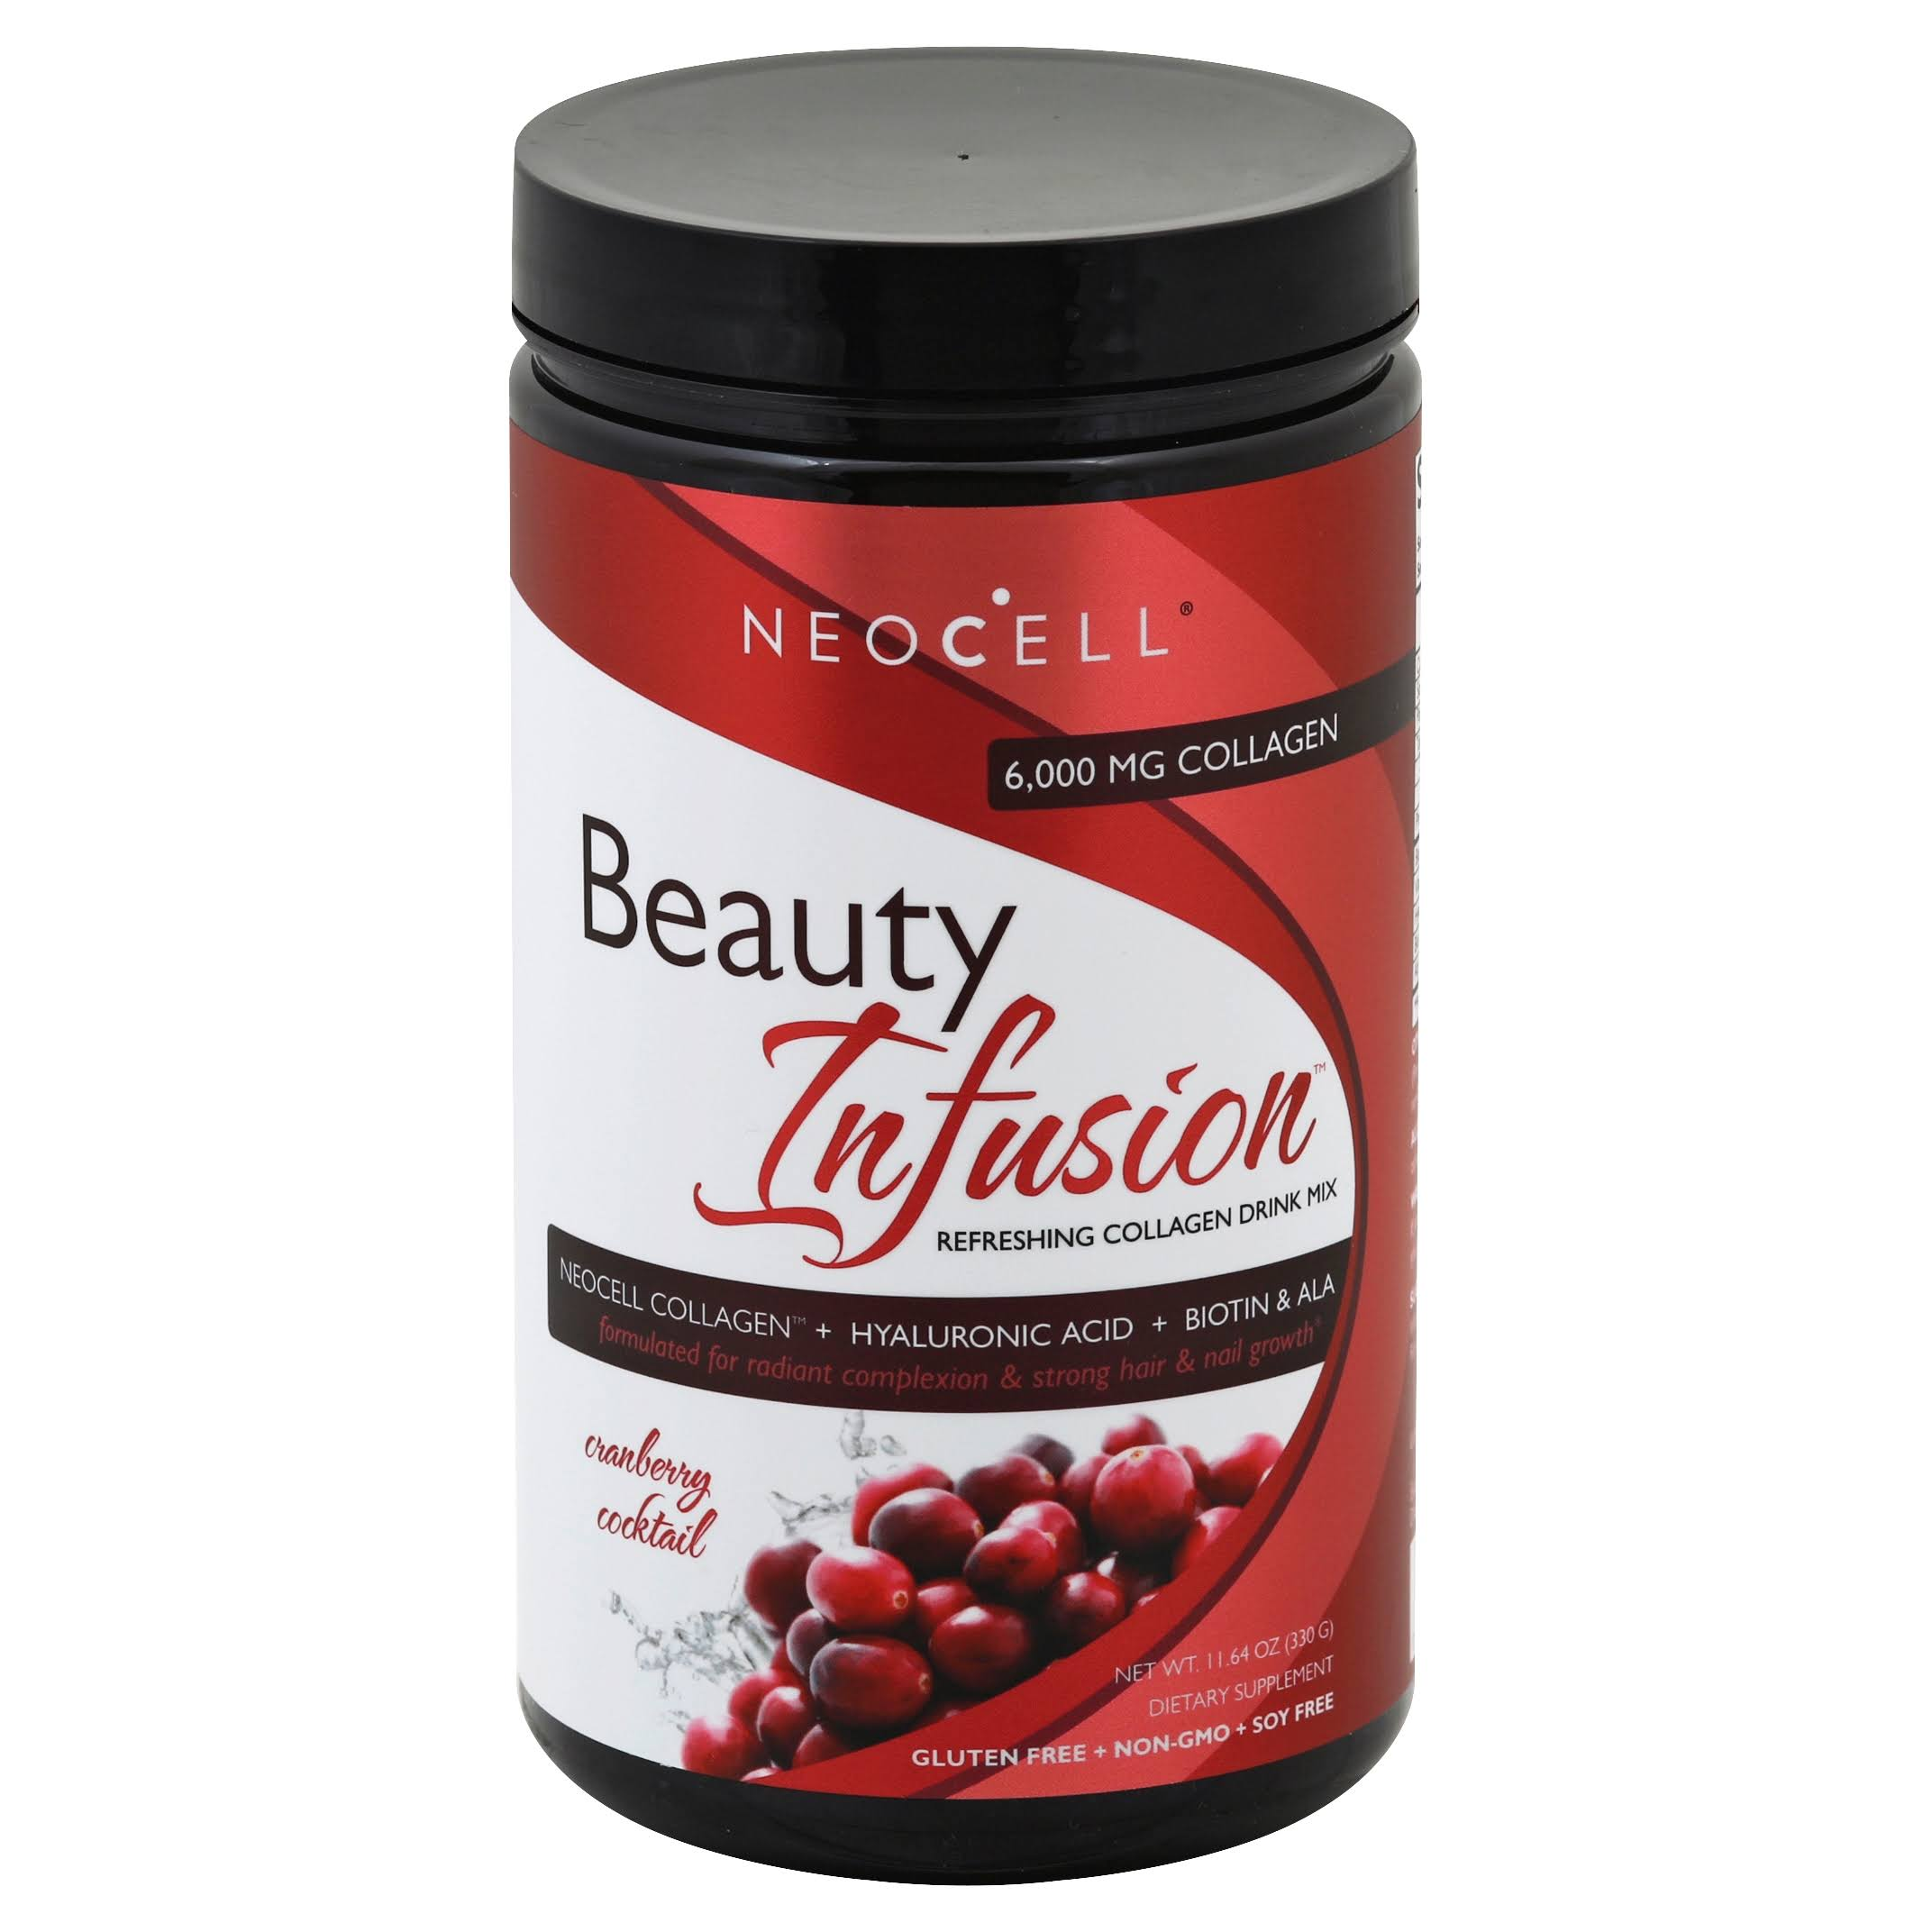 NeoCell Beauty Infusion Cranberry Cocktail - 11.64oz